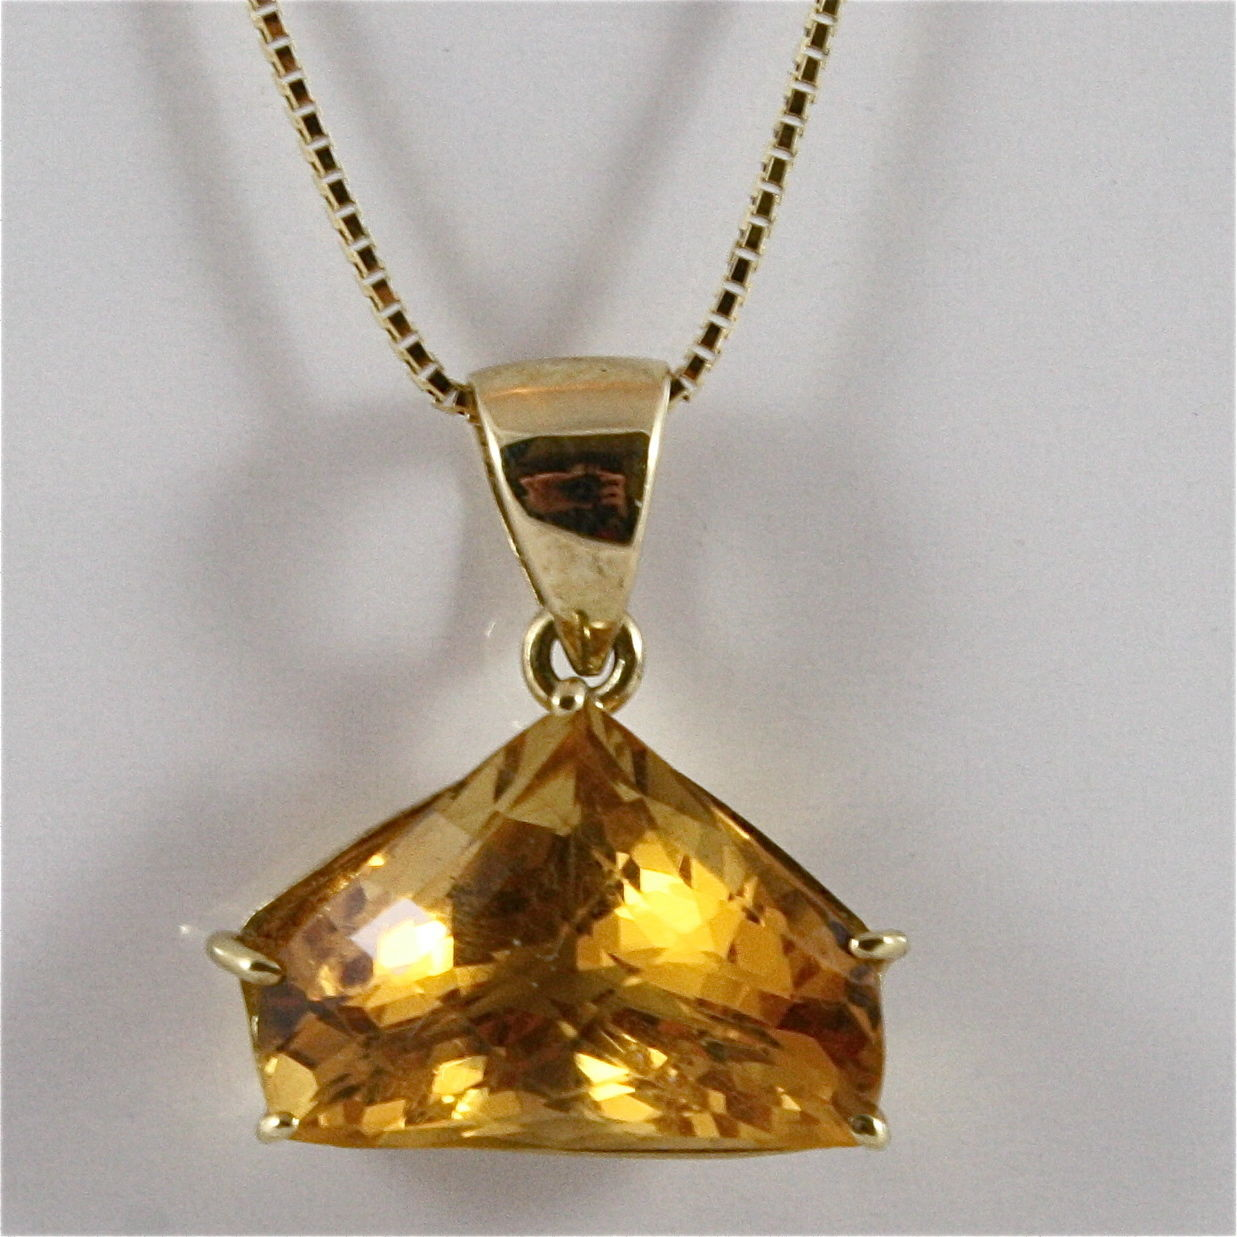 18K 750 YELLOW GOLD PENDANT WITH CITRINE, NECKLACE, MADE IN ITALY